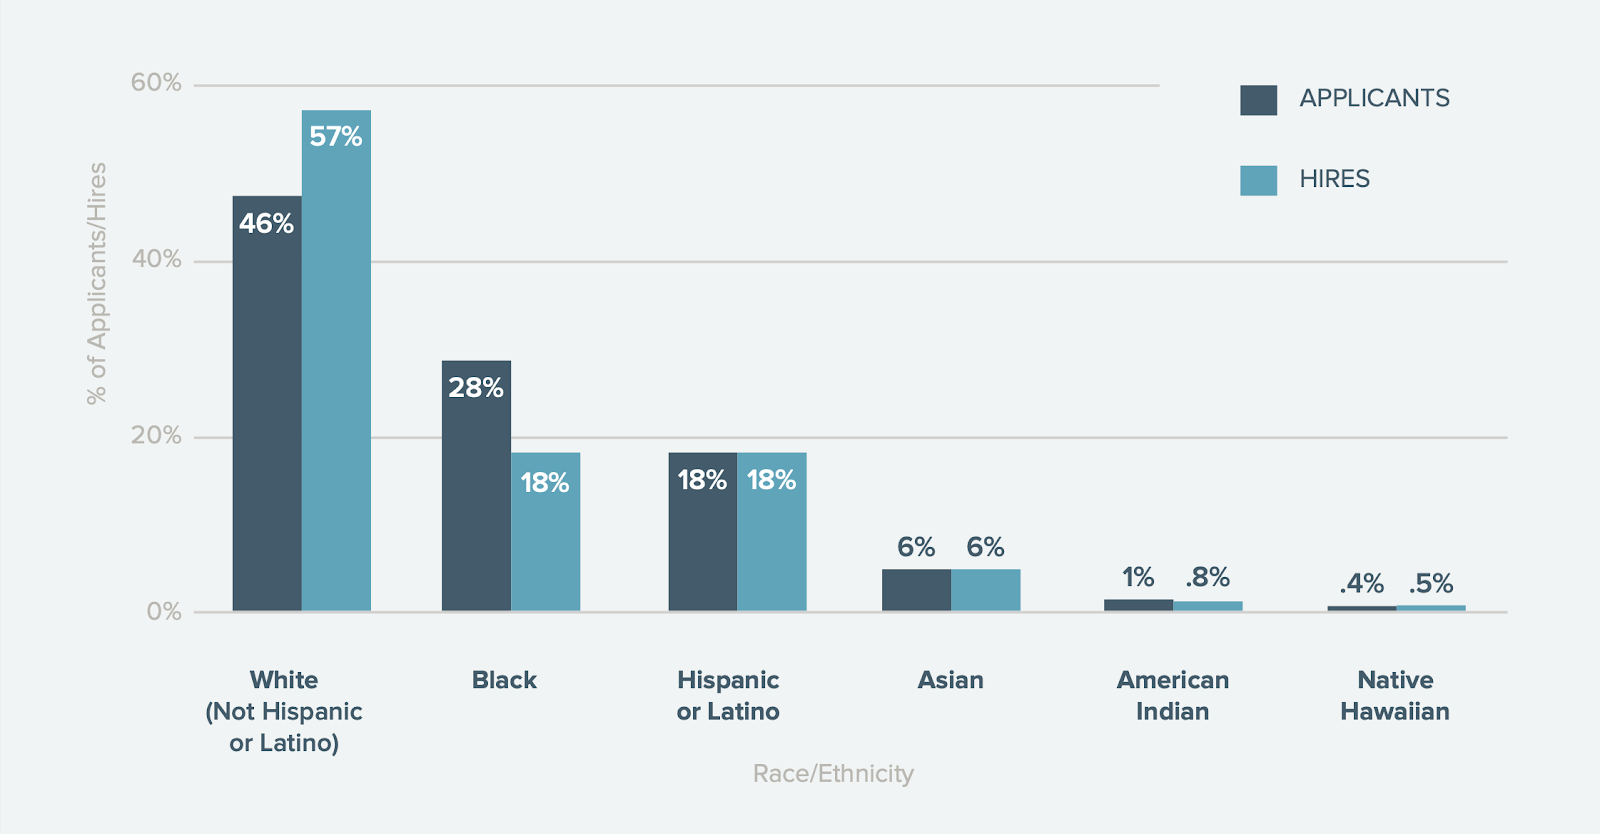 Chart: Applied % vs Hired % by Race or Ethnicity